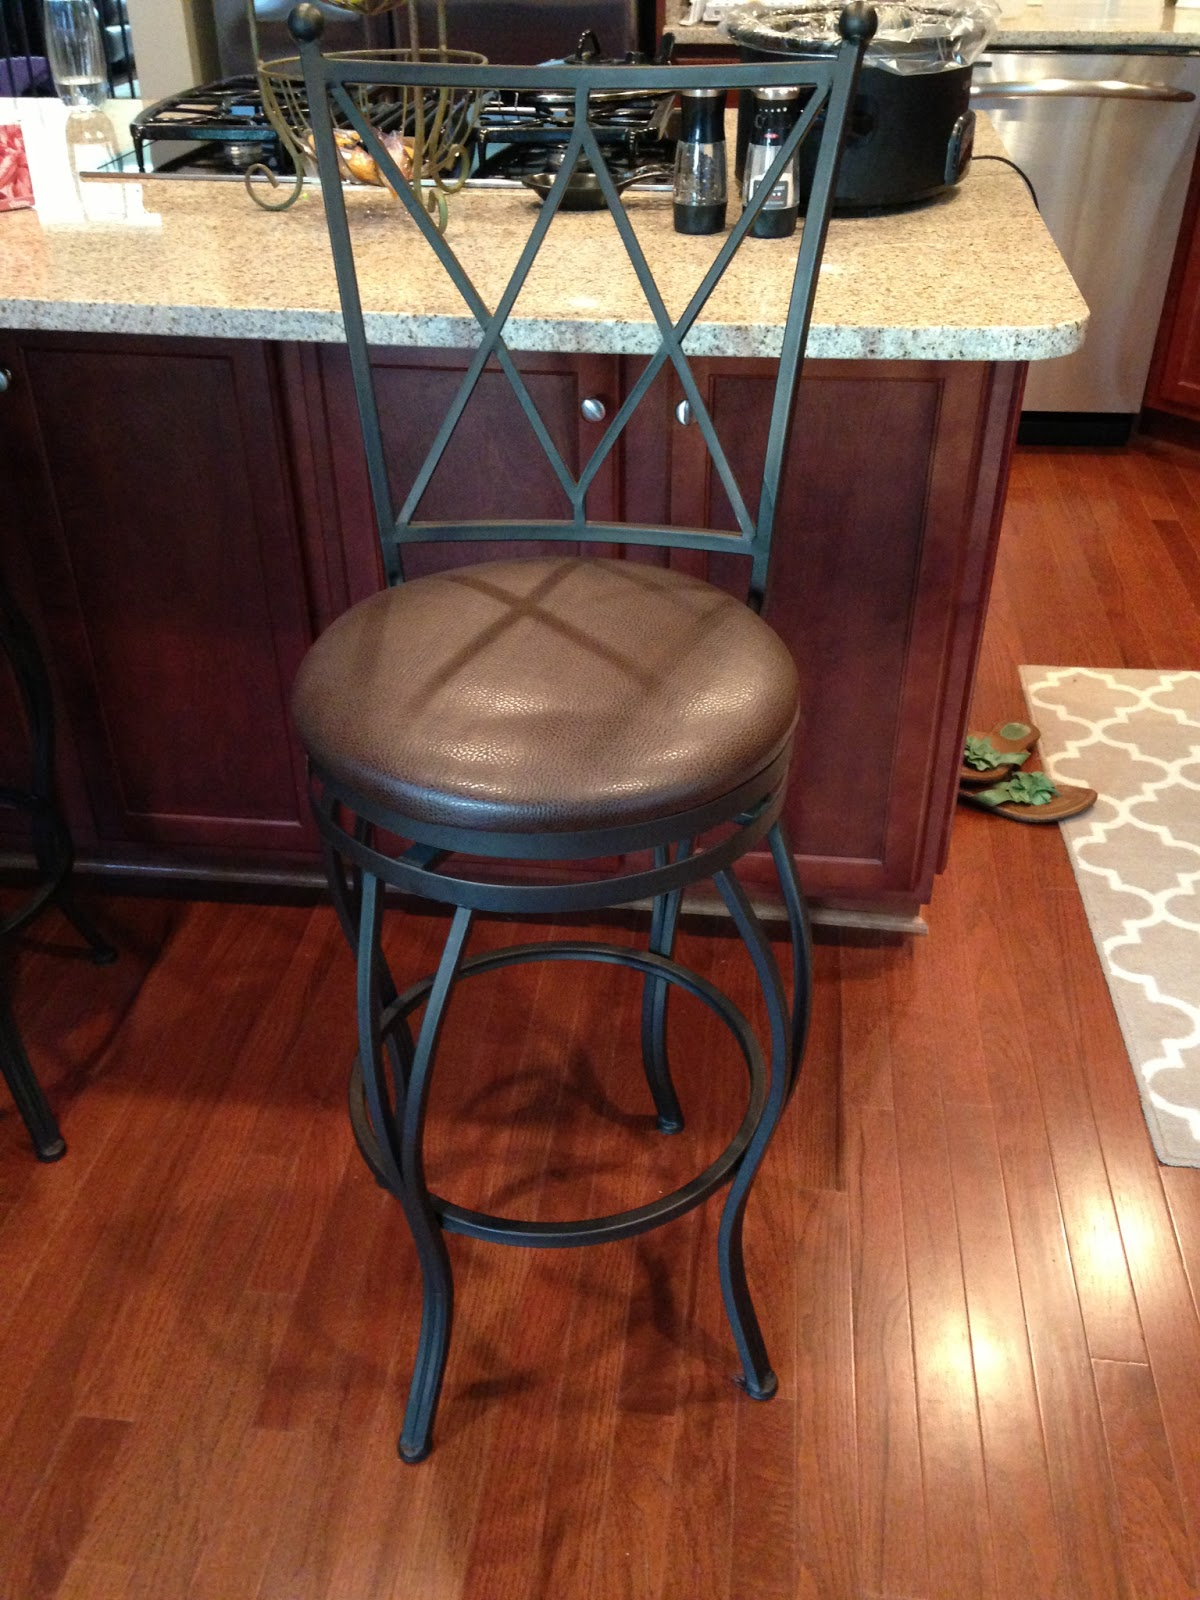 House of Thrifty Decor: Craigslist Find...New Bar Stools